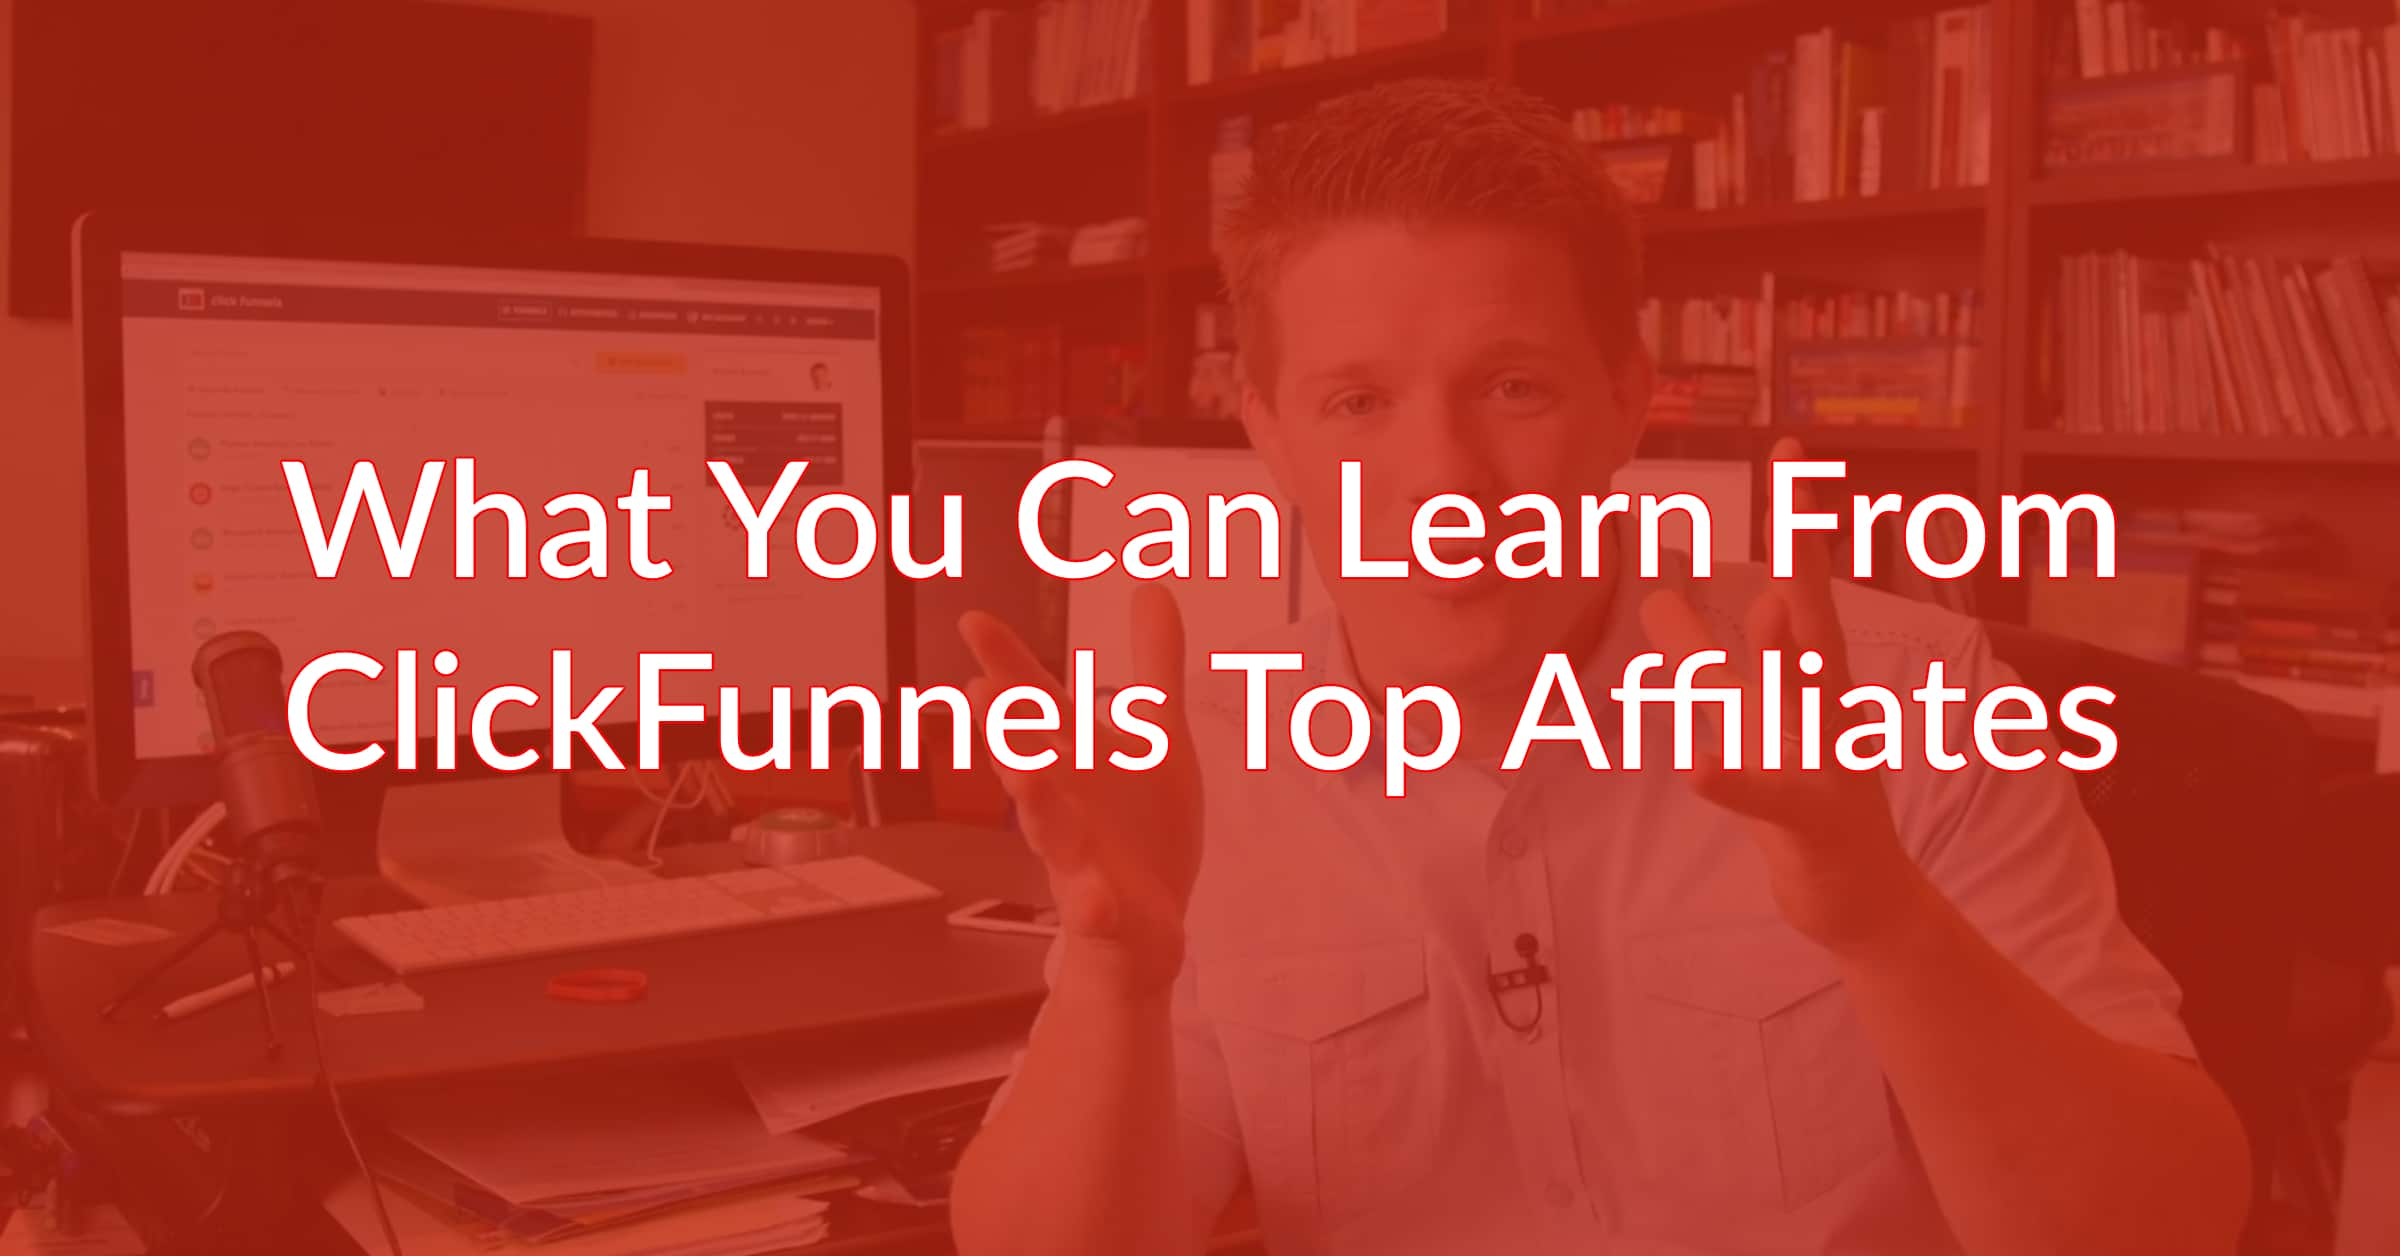 What You Can Learn From ClickFunnels Top Affiliates